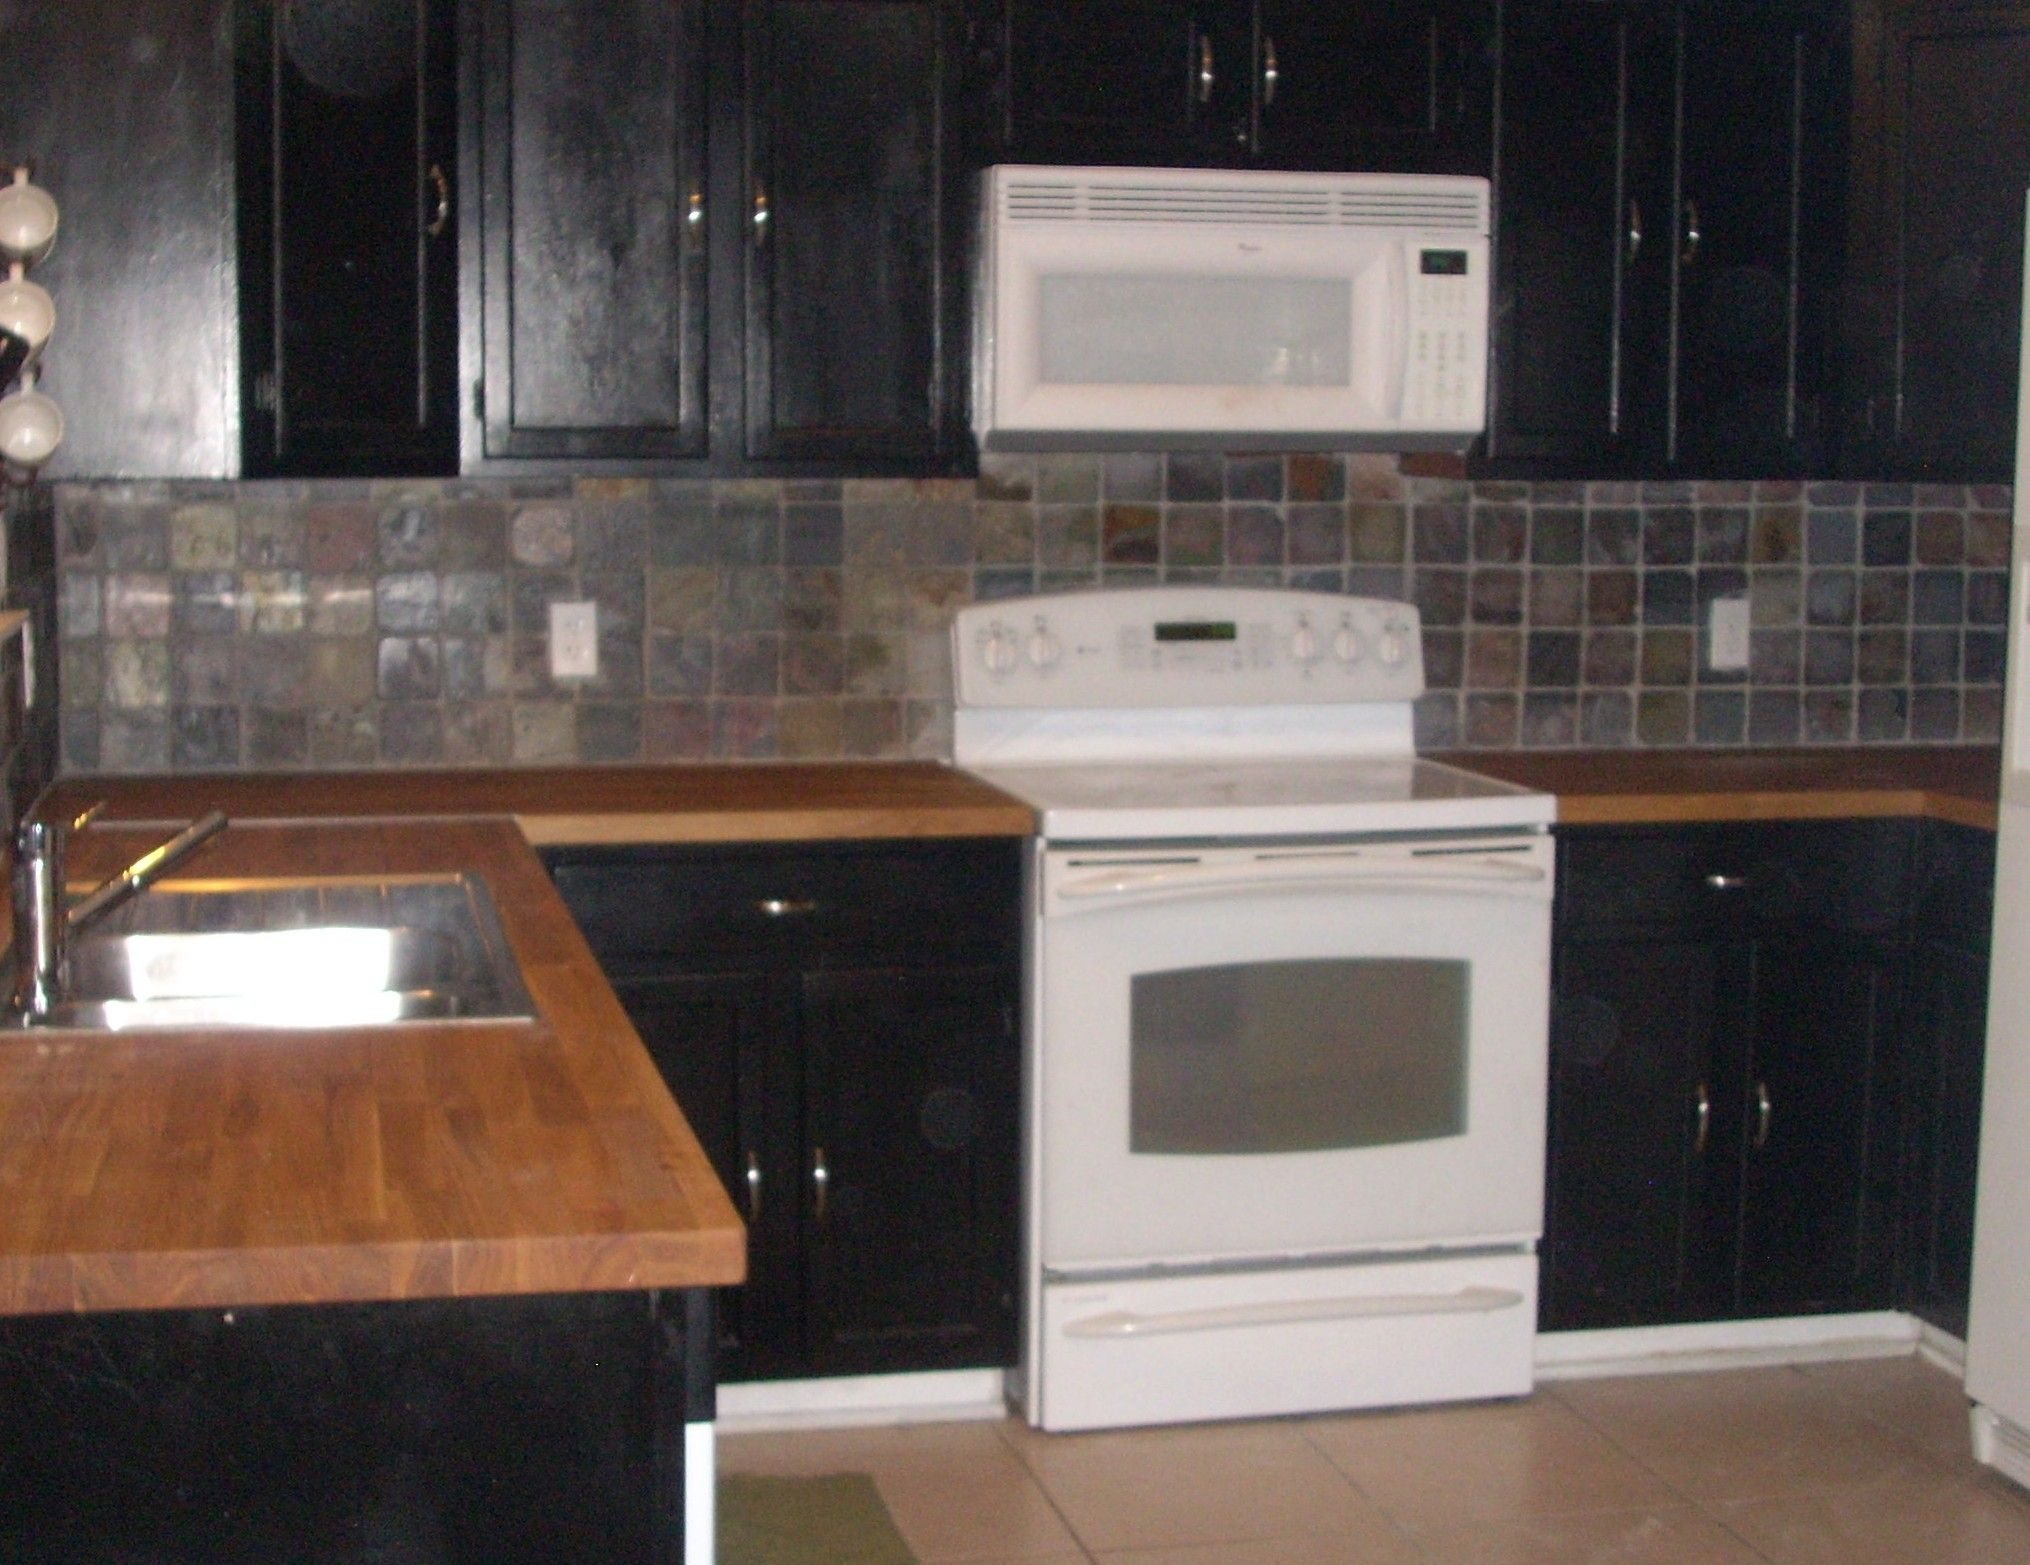 Wood Kitchen Countertops Black Cabinets Black Cabinets With Stainless Backsplash And Butcher Block